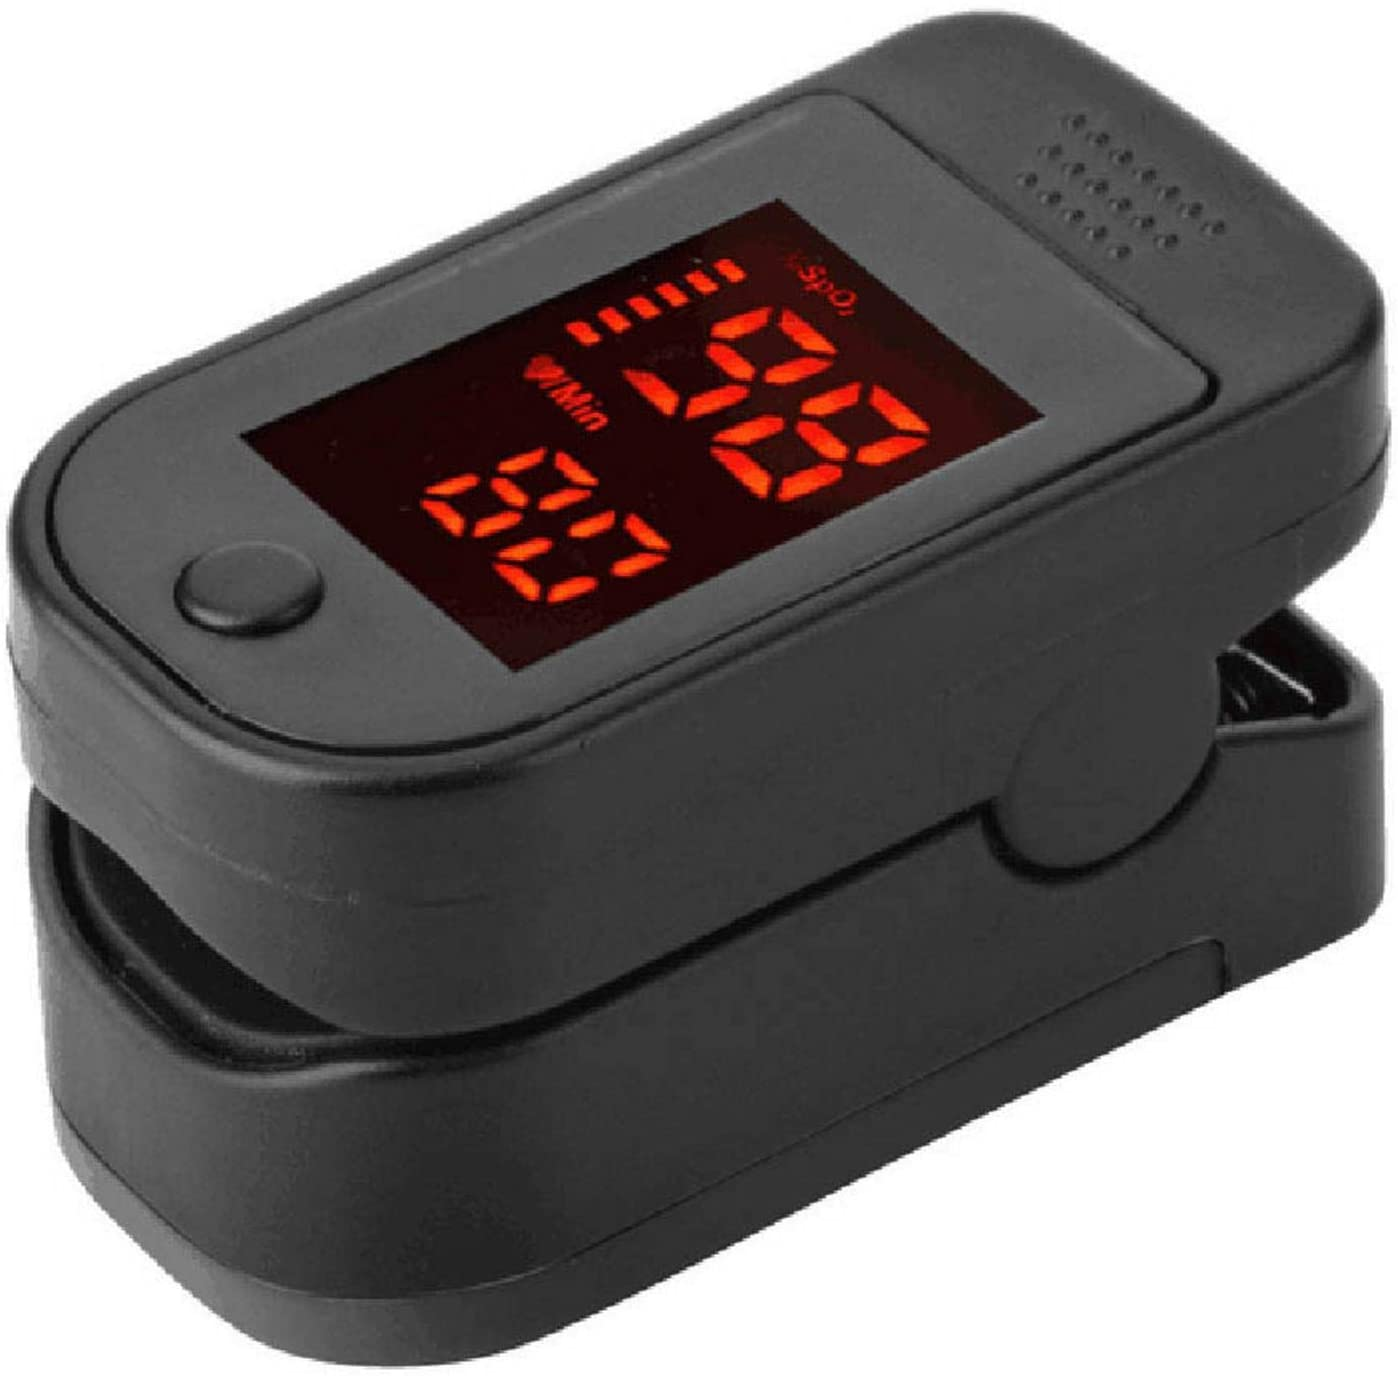 Pulse Oximeter, Oxygen Monitor, Finger Pulse with OLED Display Includes Bag for Adult and Child (Random Color)